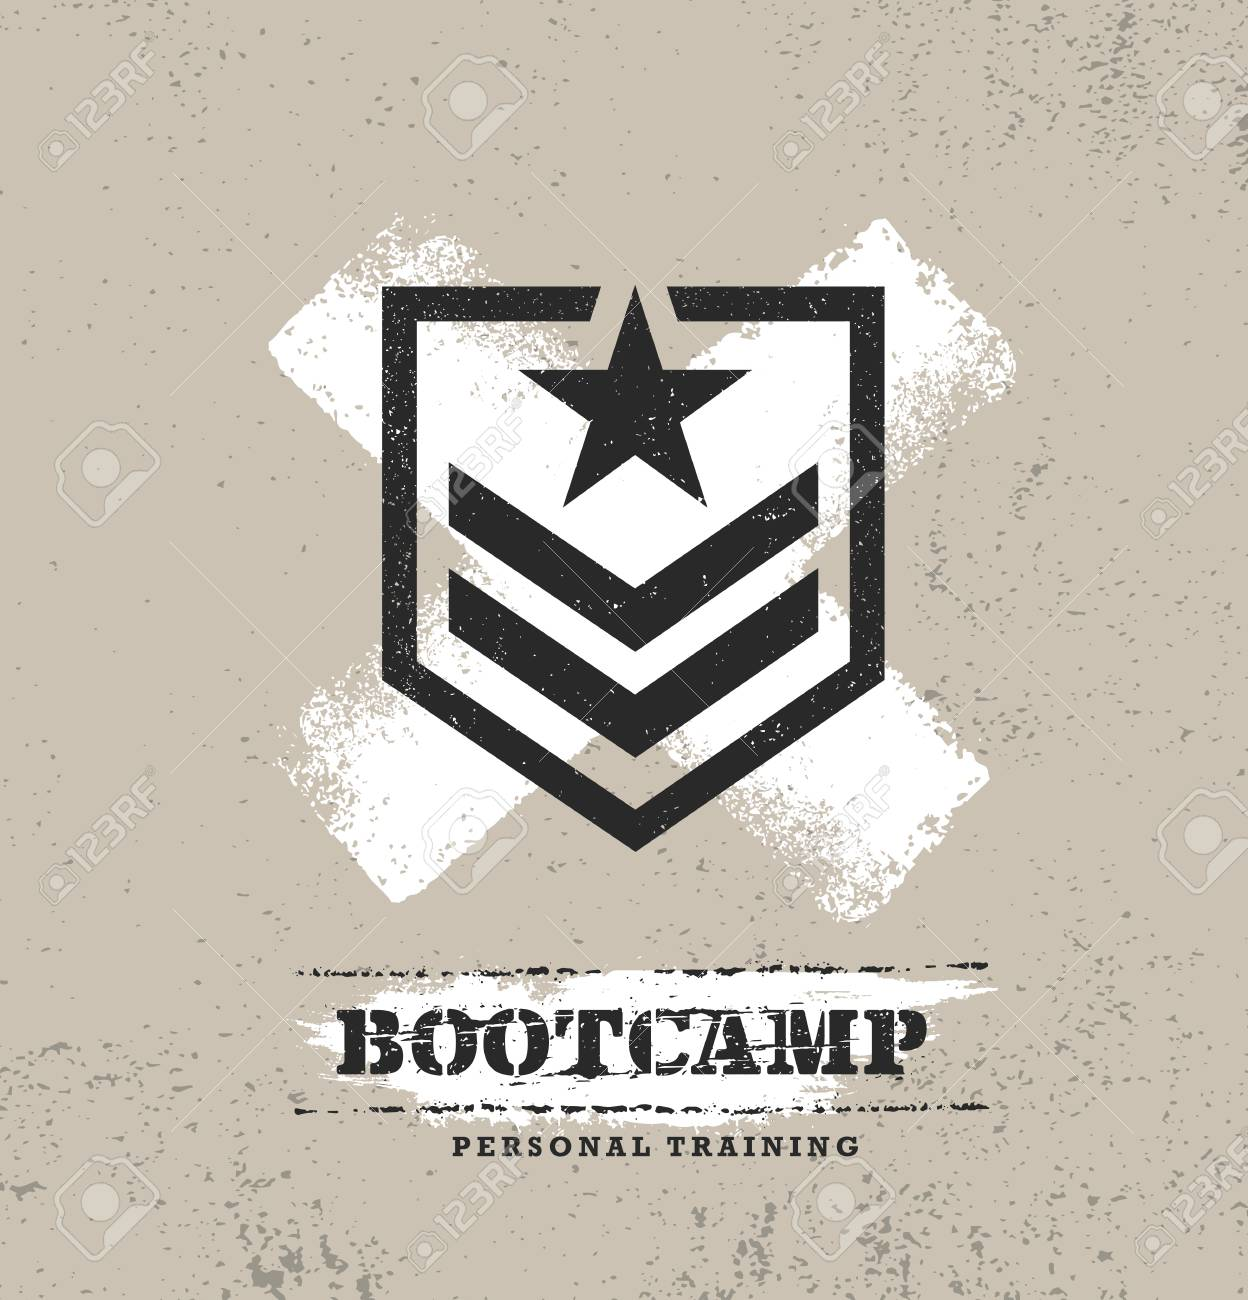 Fitness Body Training Extreme Sport Outdoor Bootcamp Rough Vector Concept. Creative Textured Design Elements On Distressed Grunge Background. - 112253844